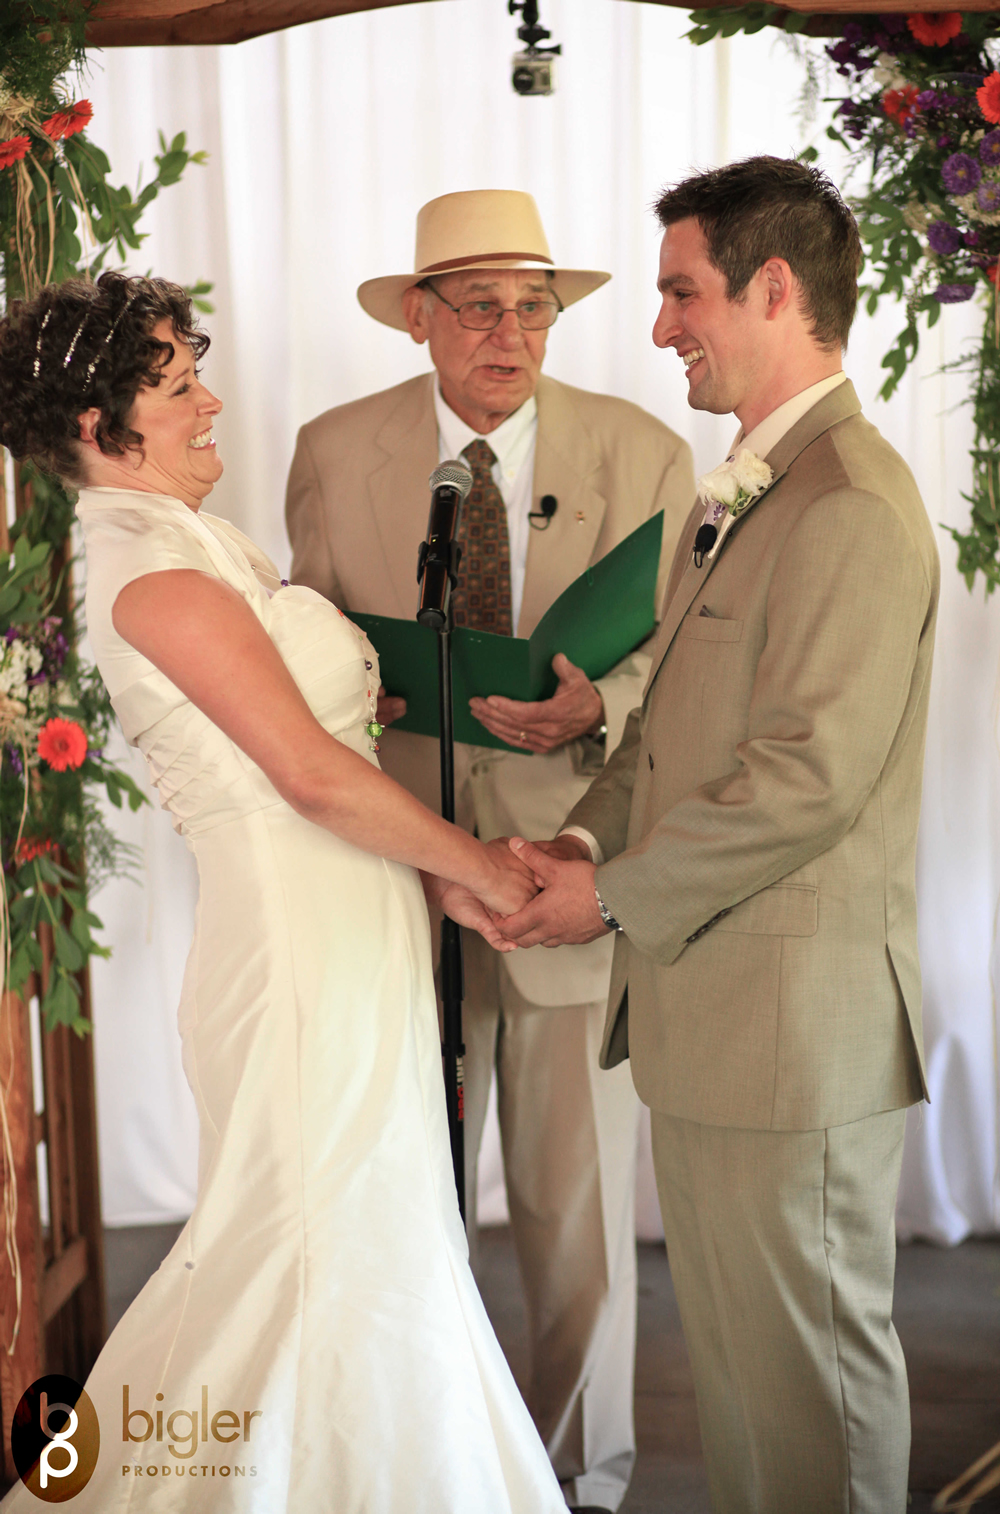 Dave_Bigler,_Lucey-Fyfe_Wedding_04